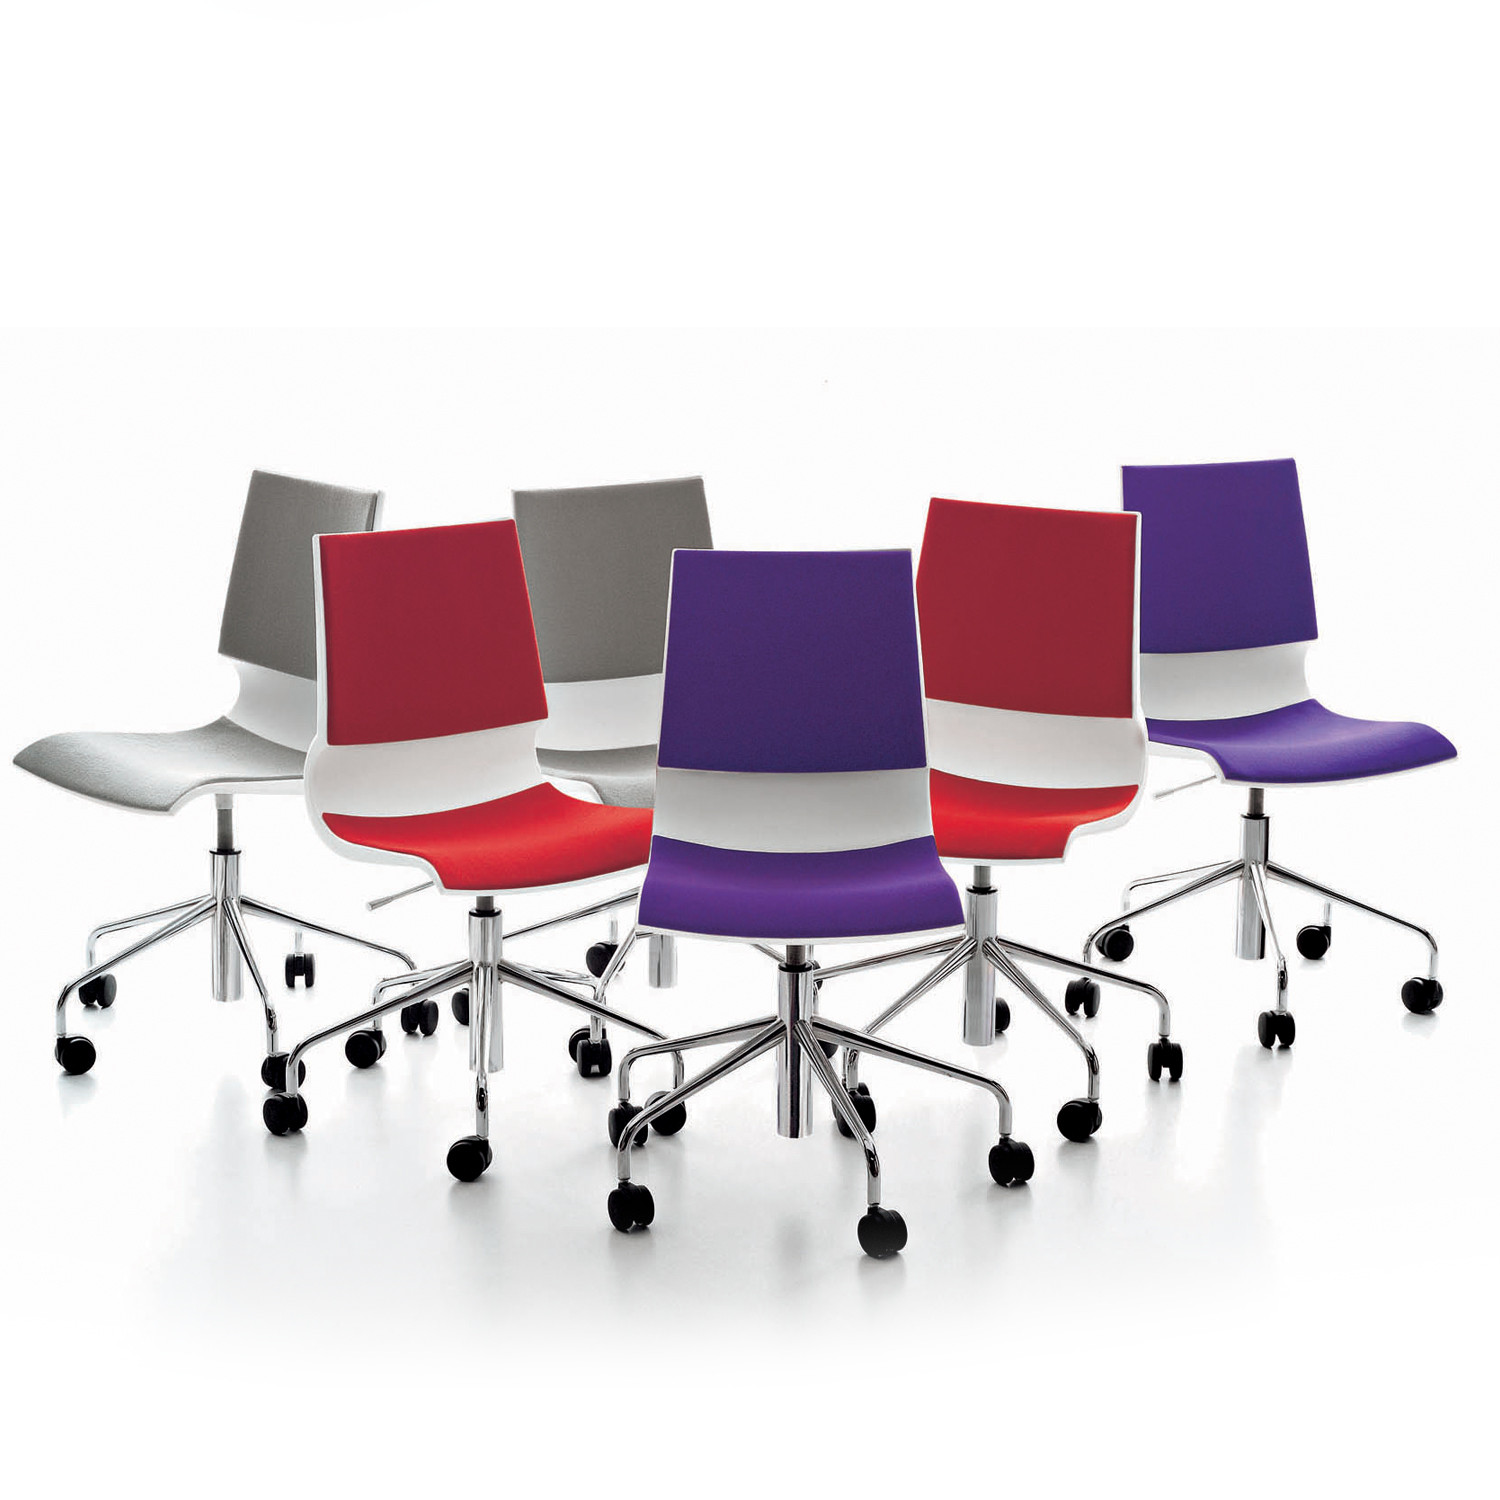 Ricciolina Chairs on Castors